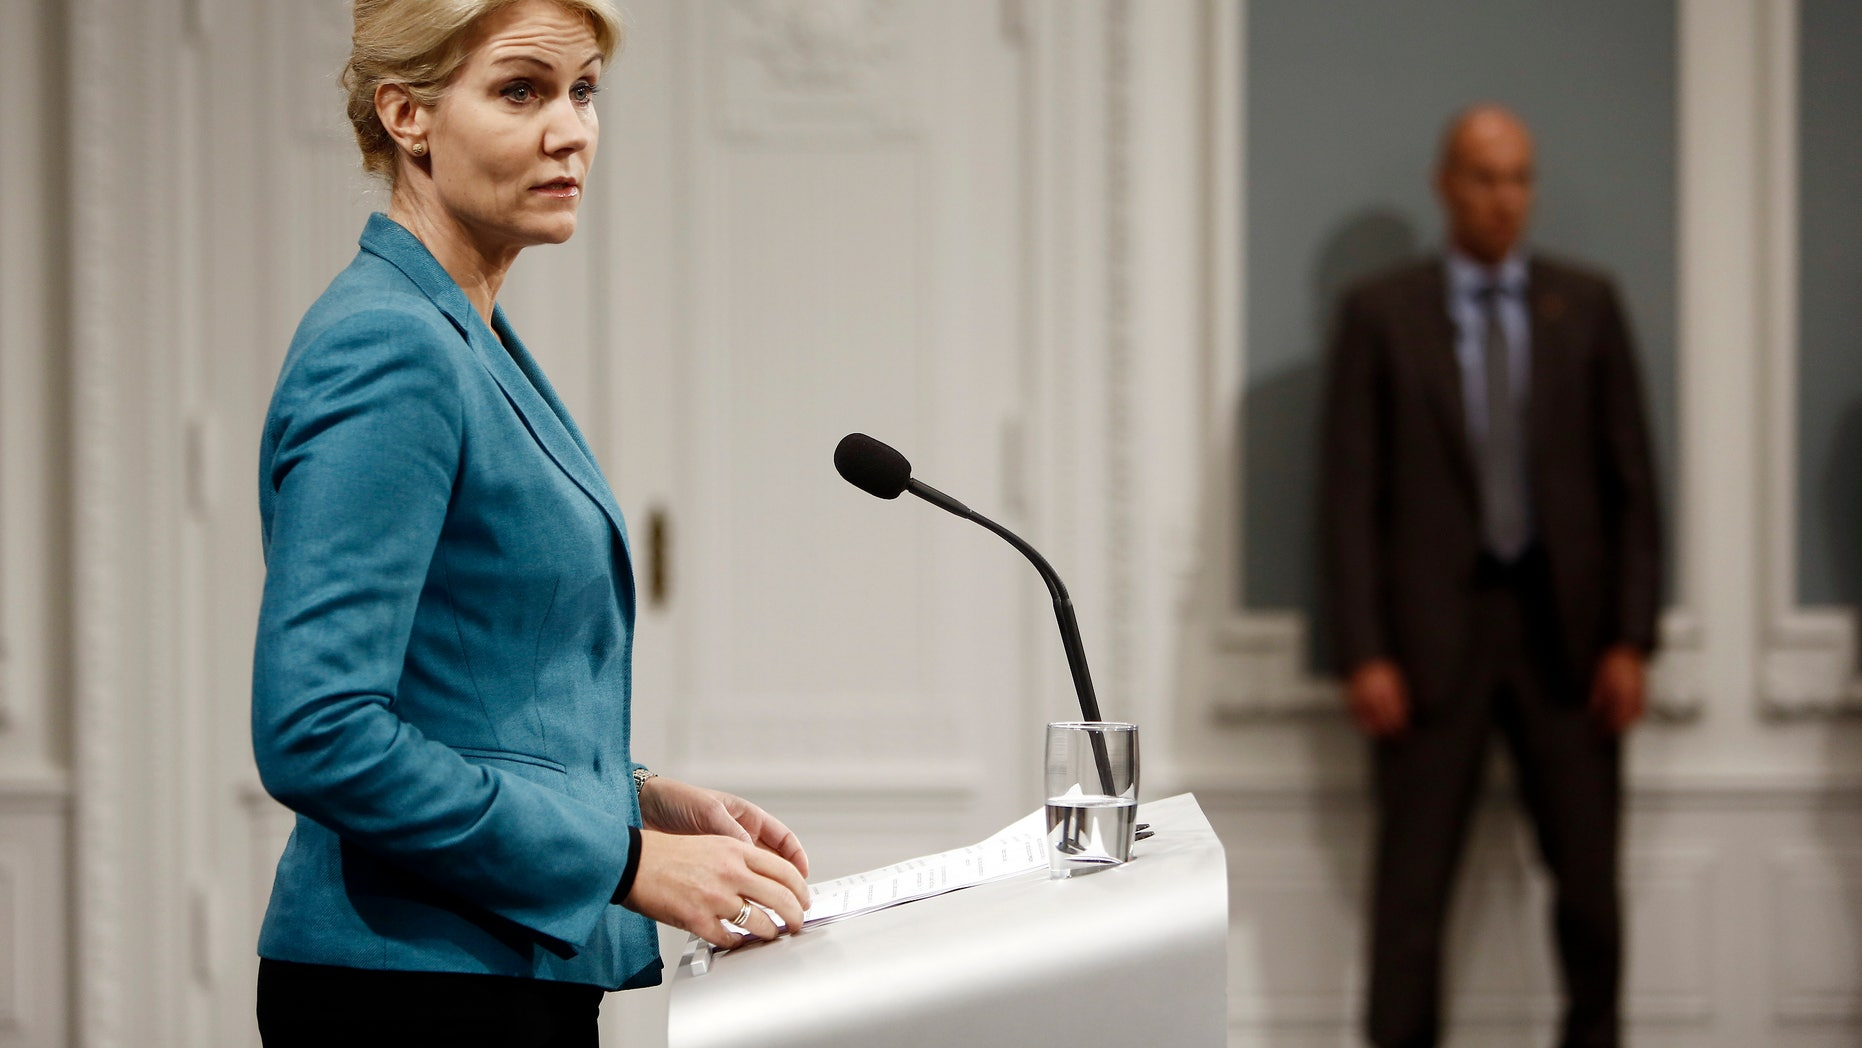 Sept. 26, 2014: Danish Prime Minister, Helle Thorning-Schmidt, at a news conference in the Prime Ministers Office, Copenhagen, Denmark. The Prime Minister announced Denmark's contribution to the fight against the Islamist State rebel group will consist of seven F16 fighter aircraft from the Danish Air Force. (AP/Polfoto, Janus Engel)